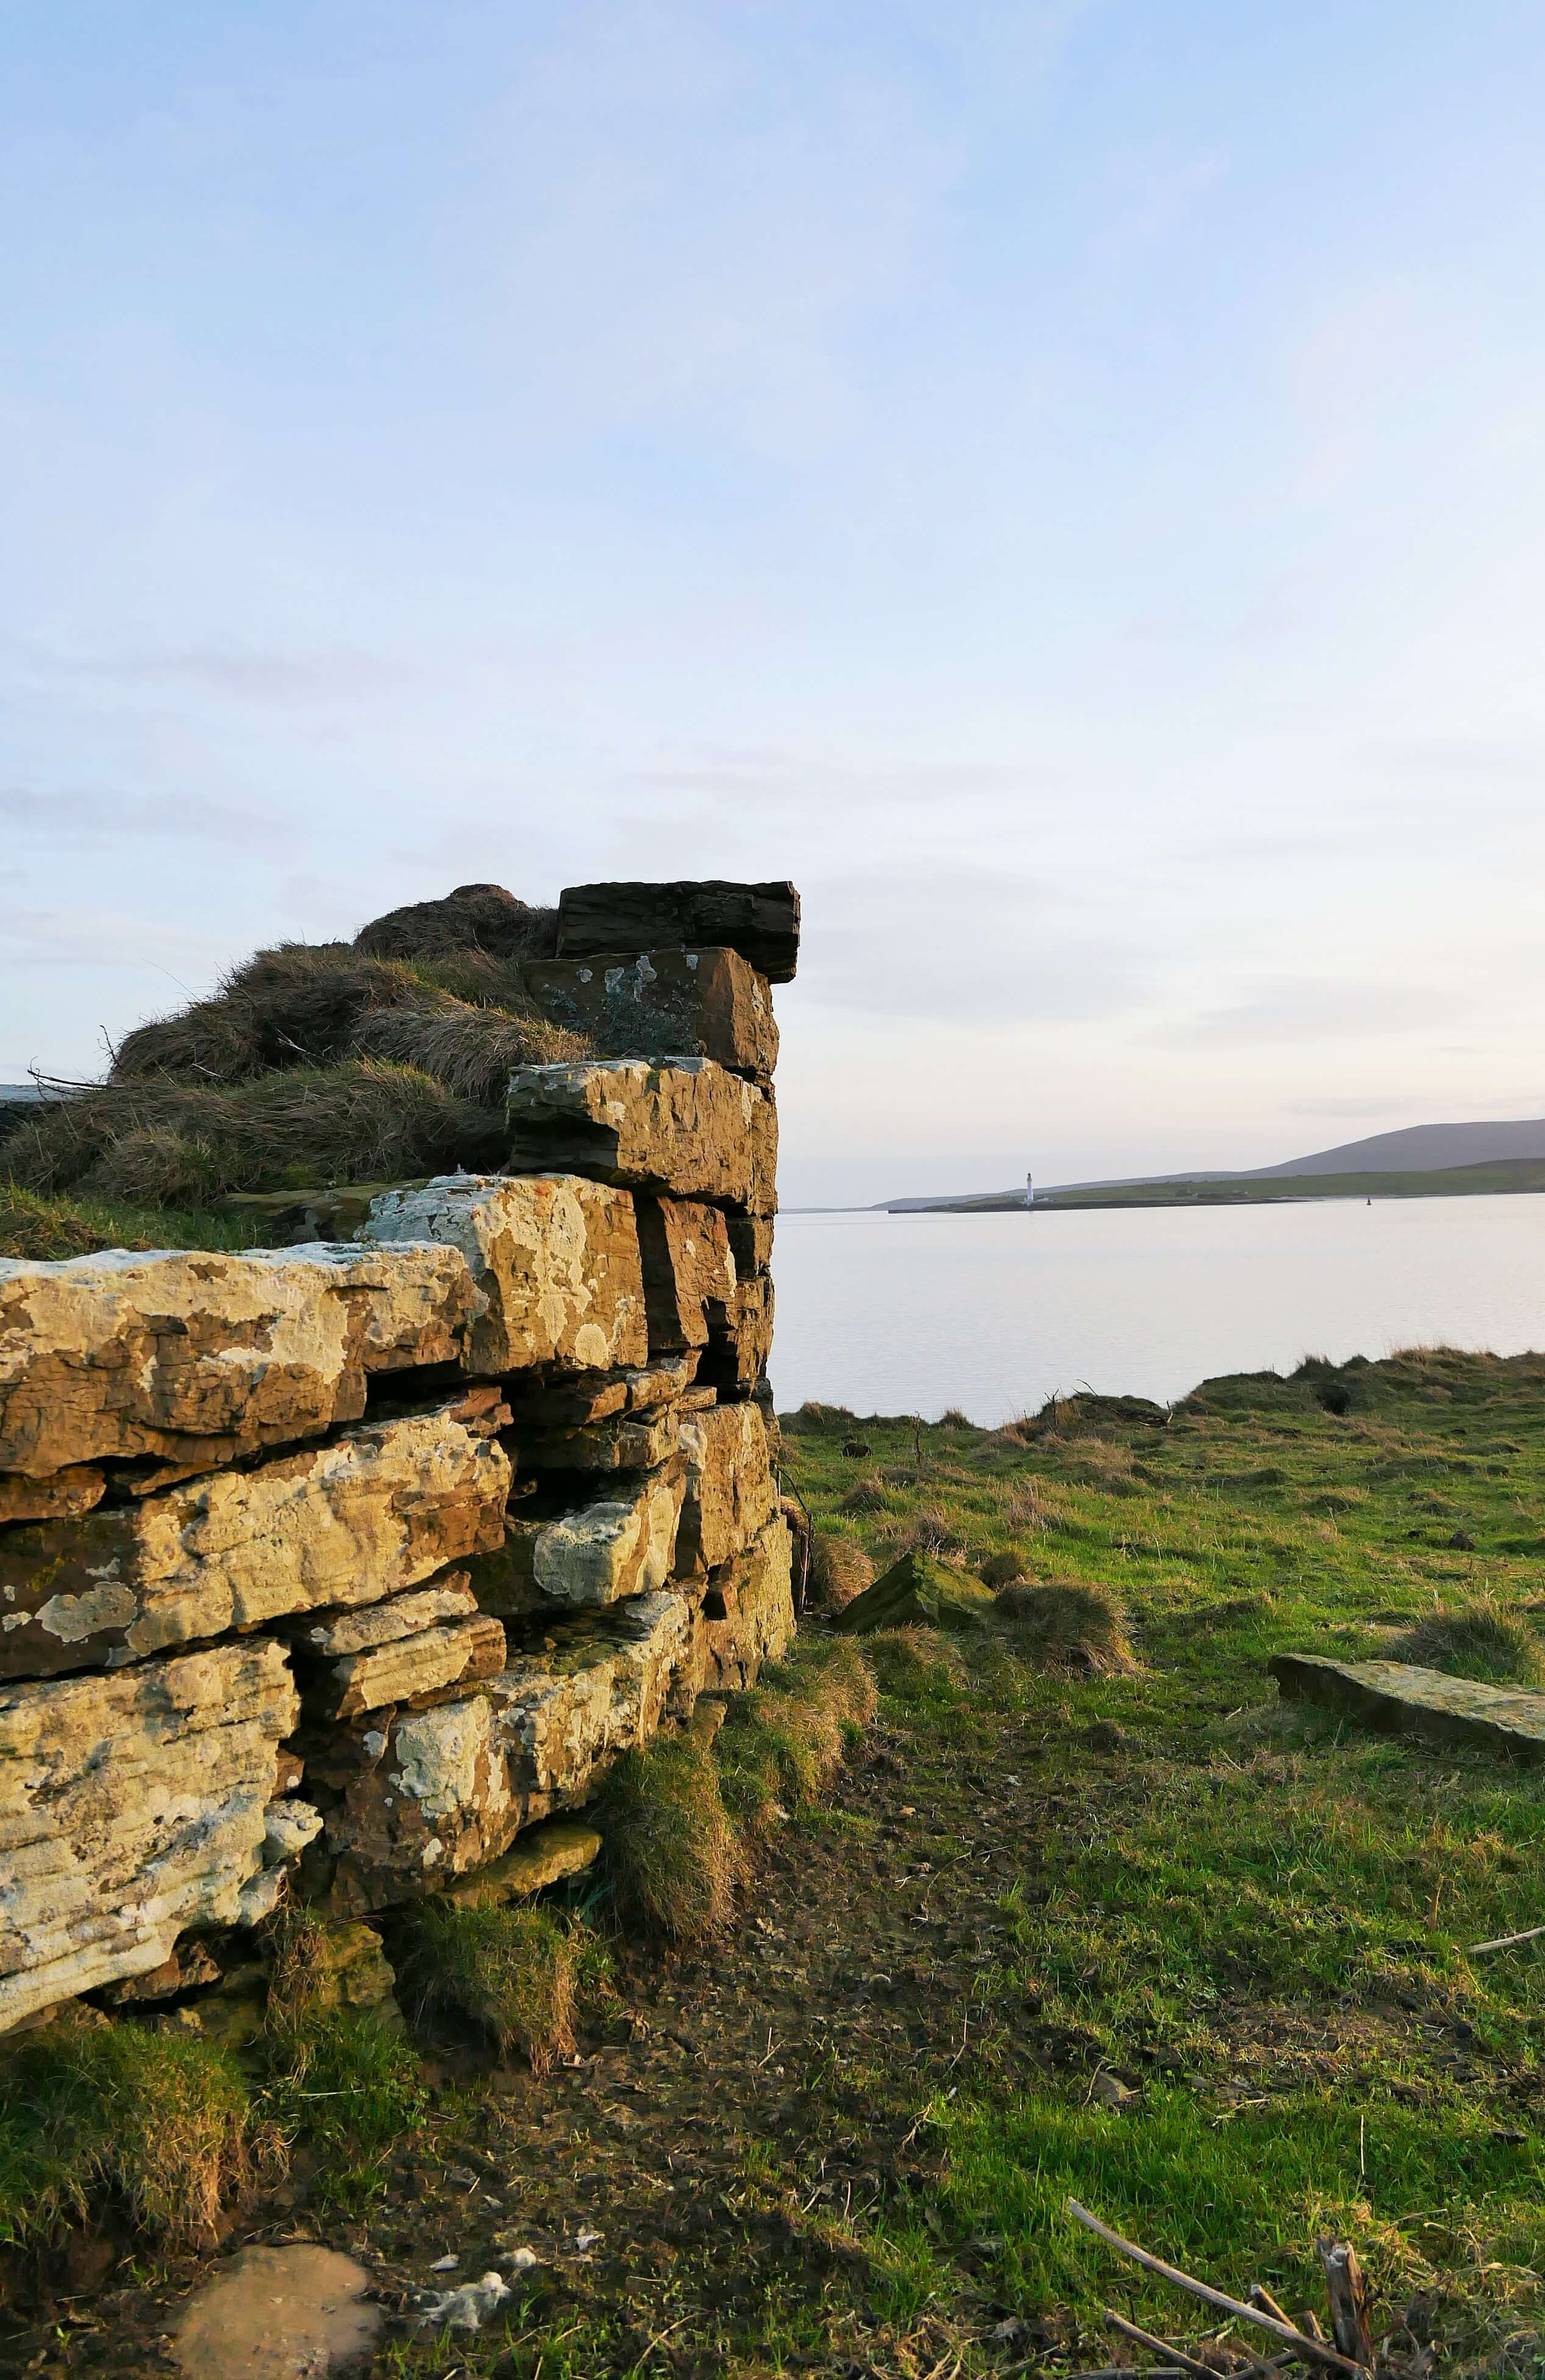 Remains of a fish curing house on a tidal island, Stromness, Orkney Islands, Scotland, UK. Orkneyology.com